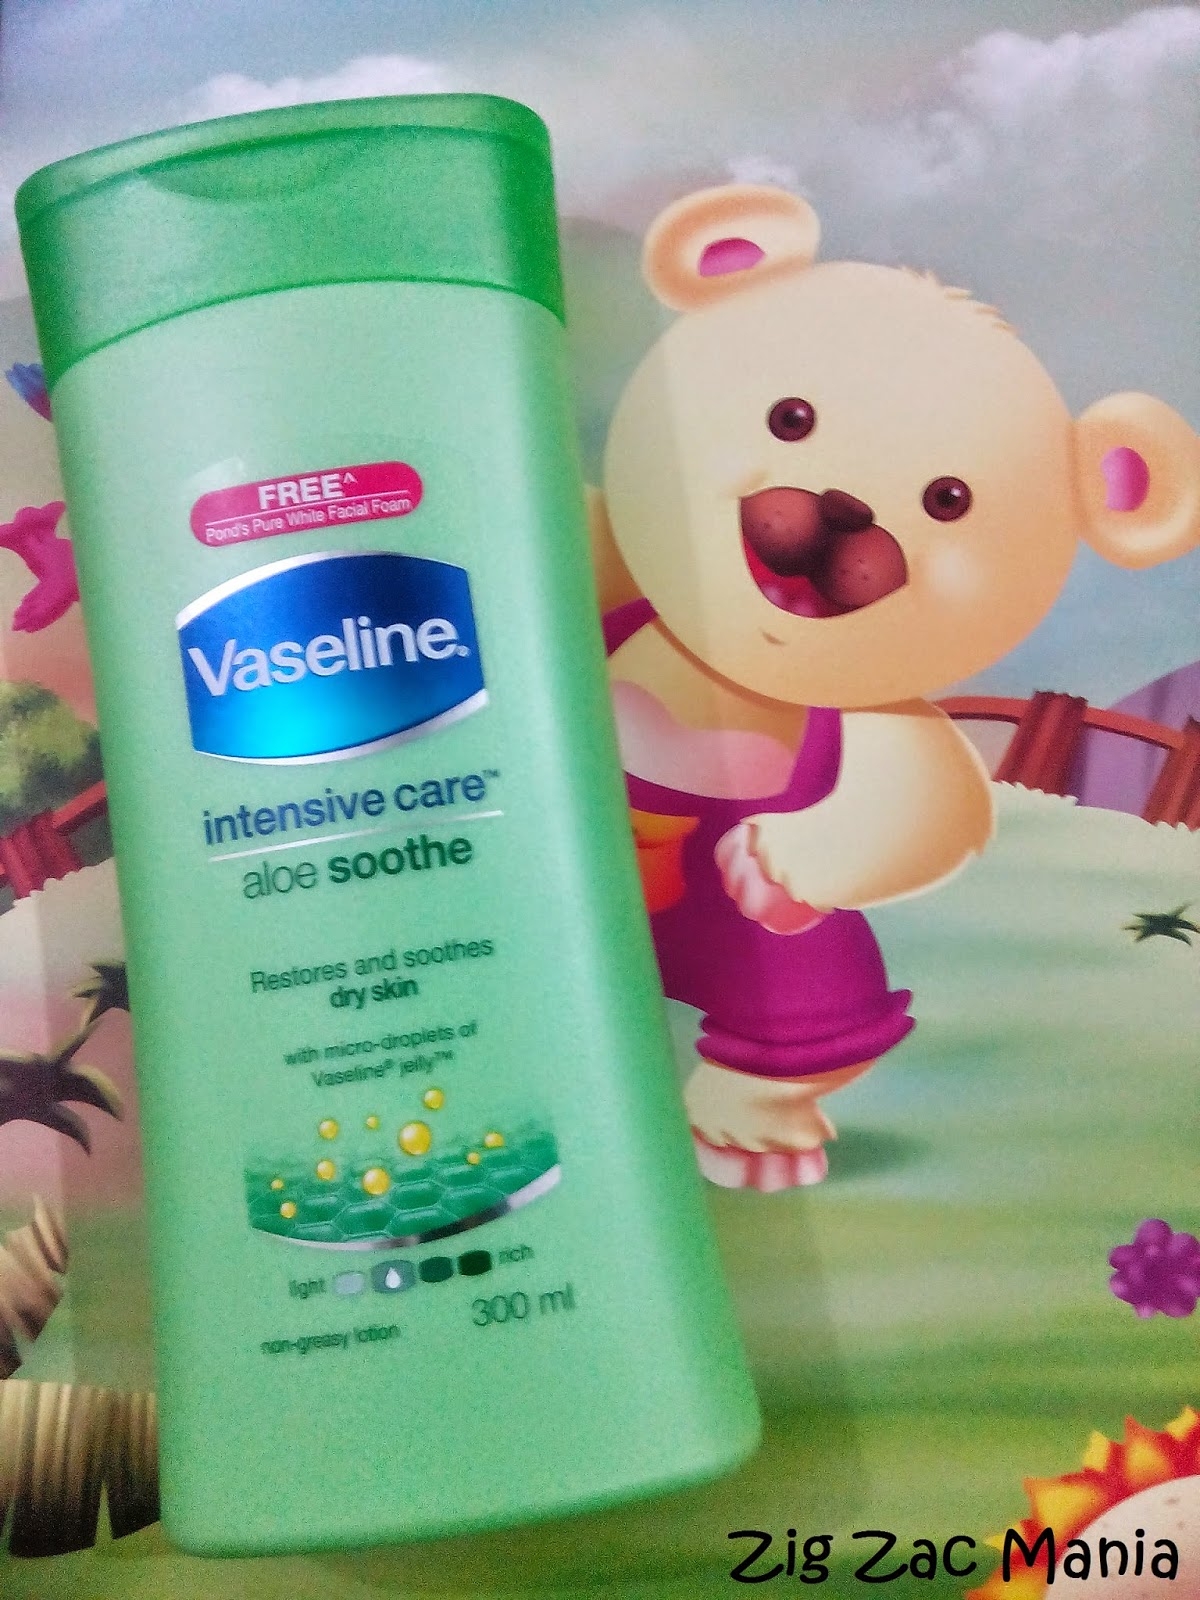 Vasline Intensive Care Aloe Soothe Lotion Review